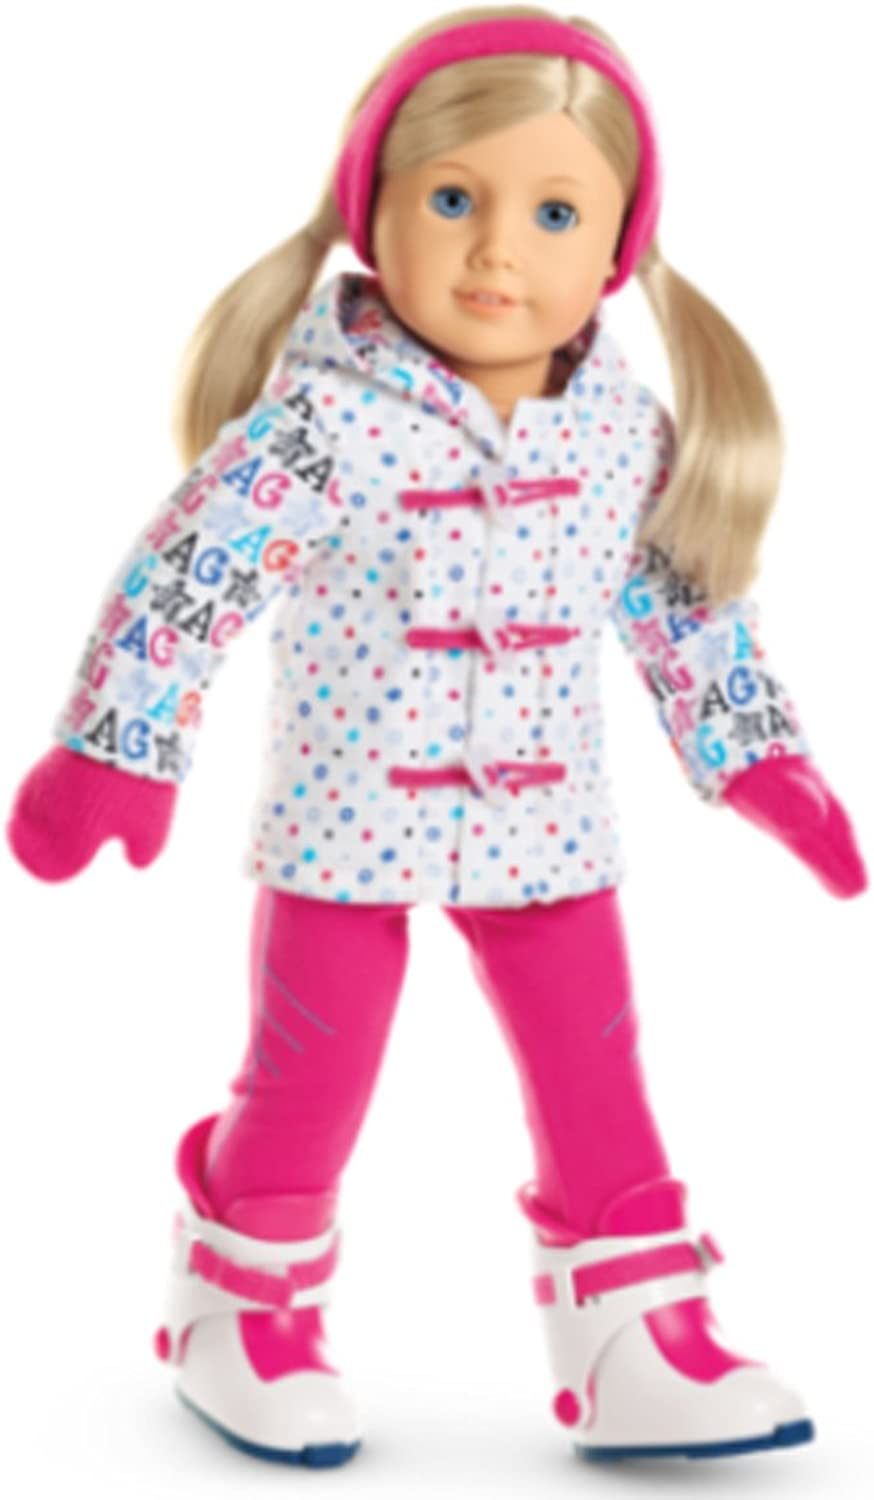 American Girl - Hit the Slopes Outfit for Dolls - Truly Me 2015 by American Girl